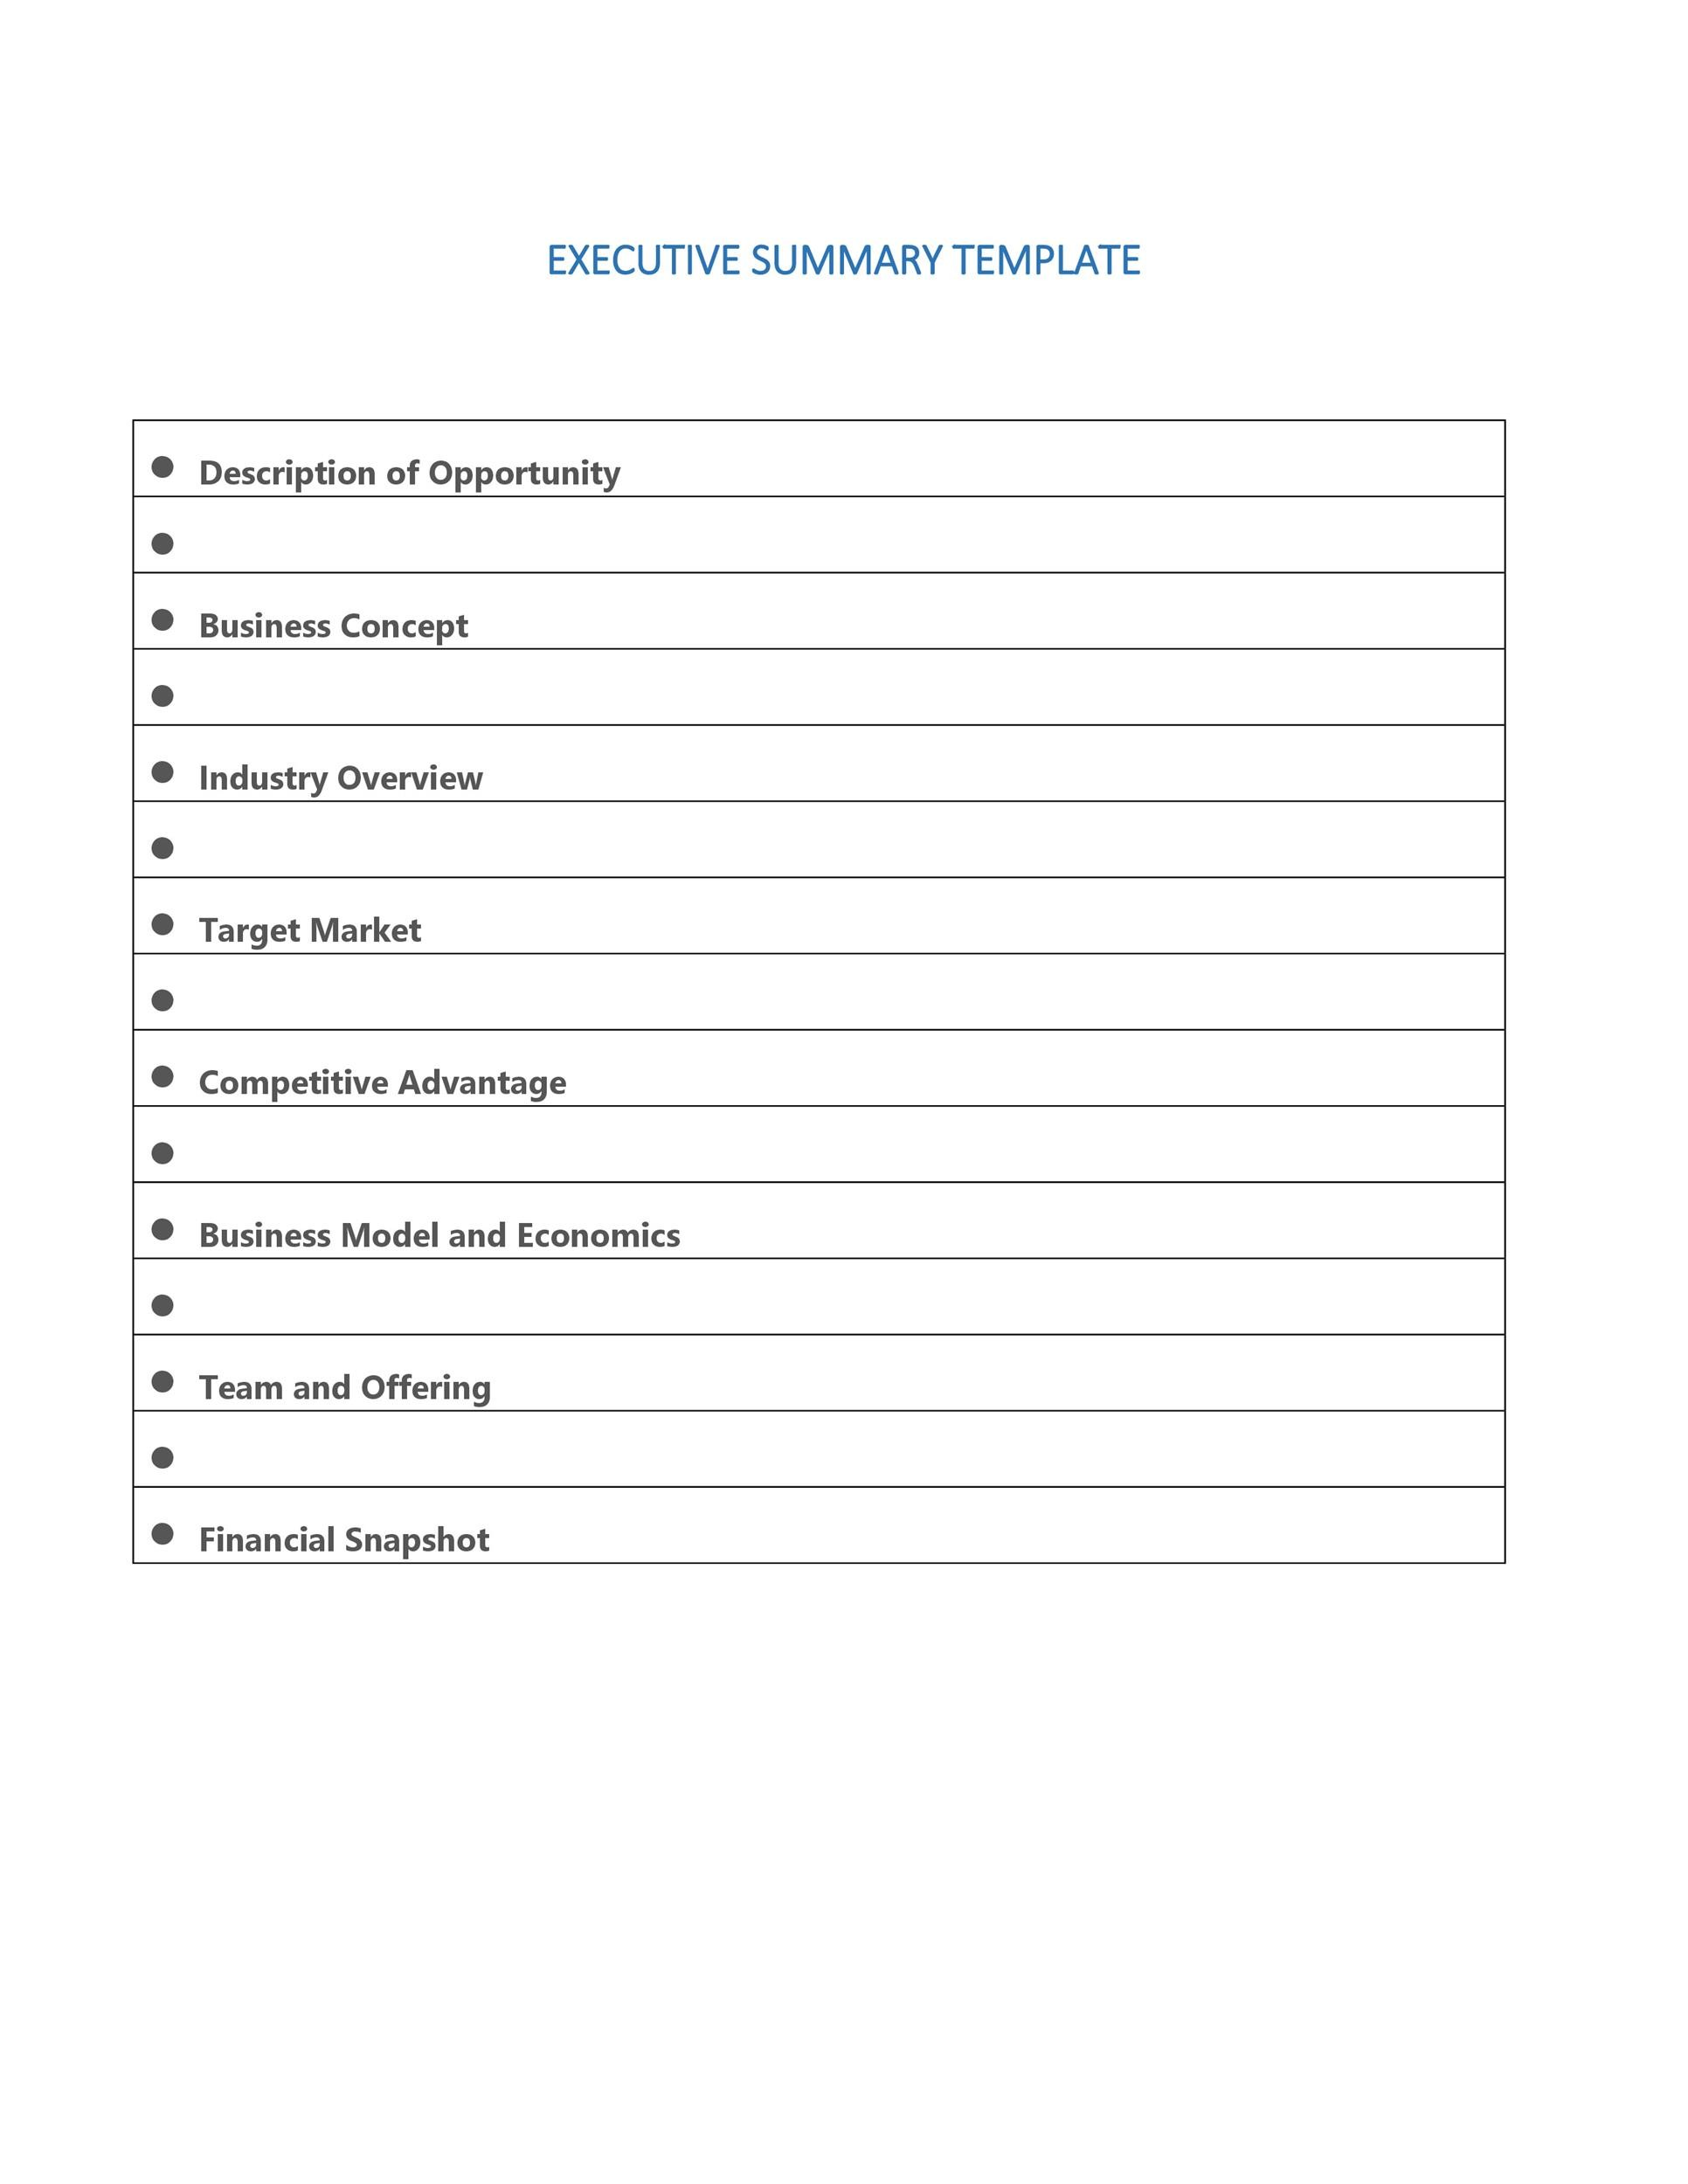 Executive Summary Template 19